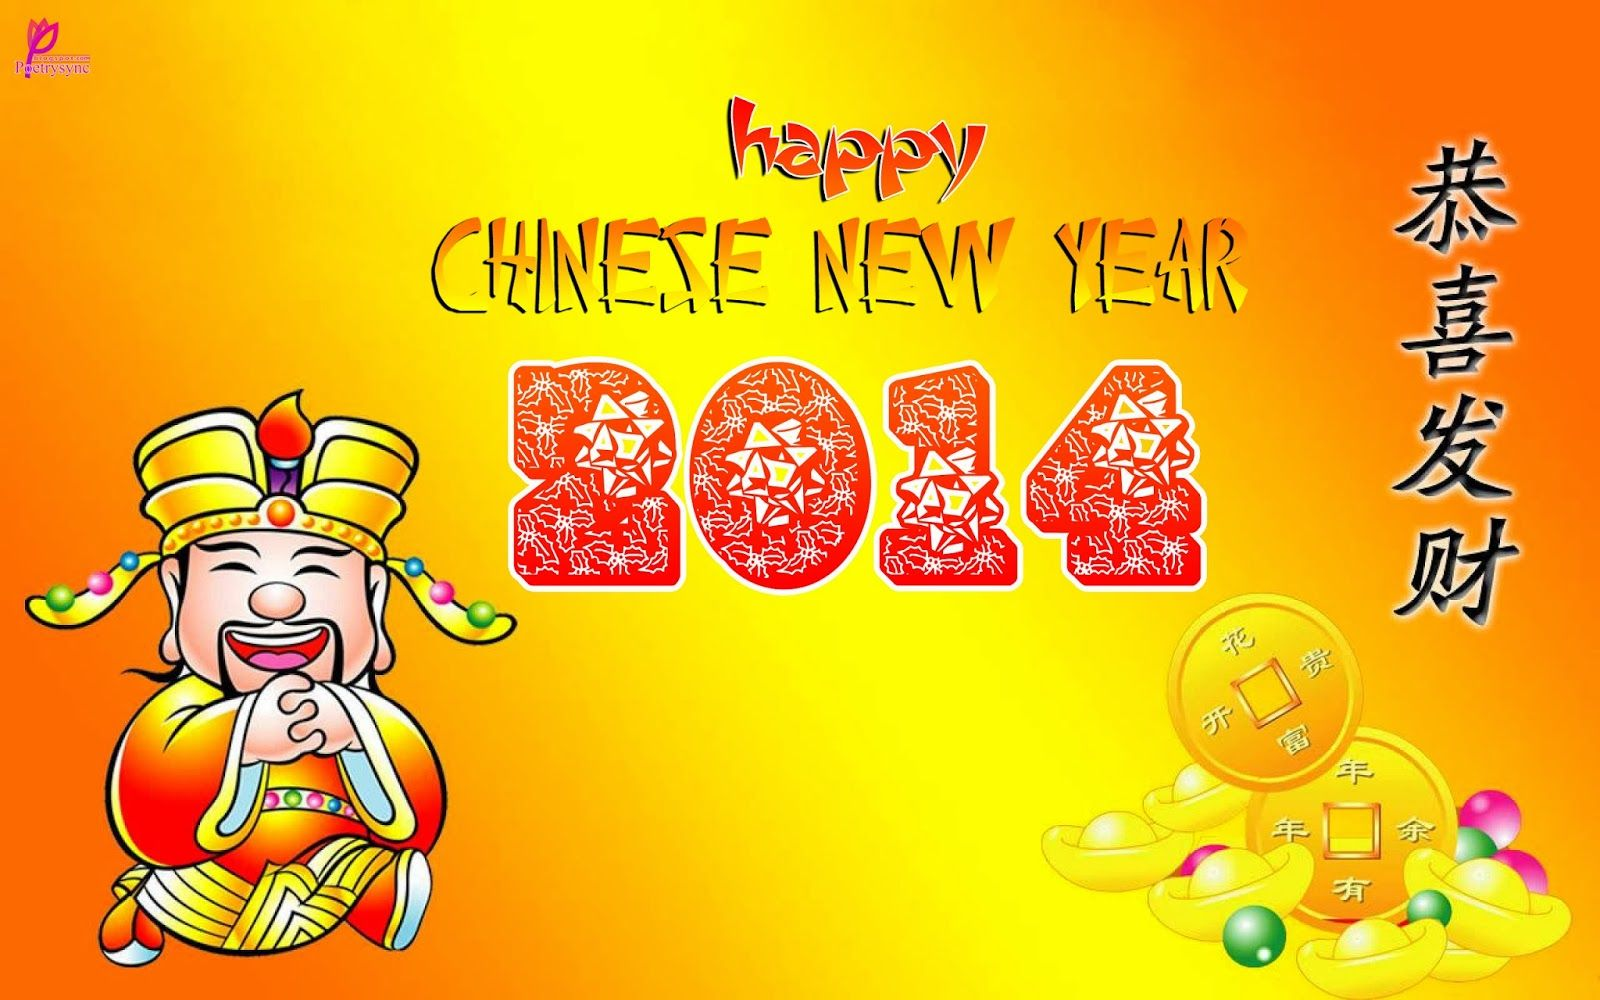 Poetry happy chinese new year wishes cards with lunar new year poetry happy chinese new year wishes cards with lunar new year quotes and messages m4hsunfo